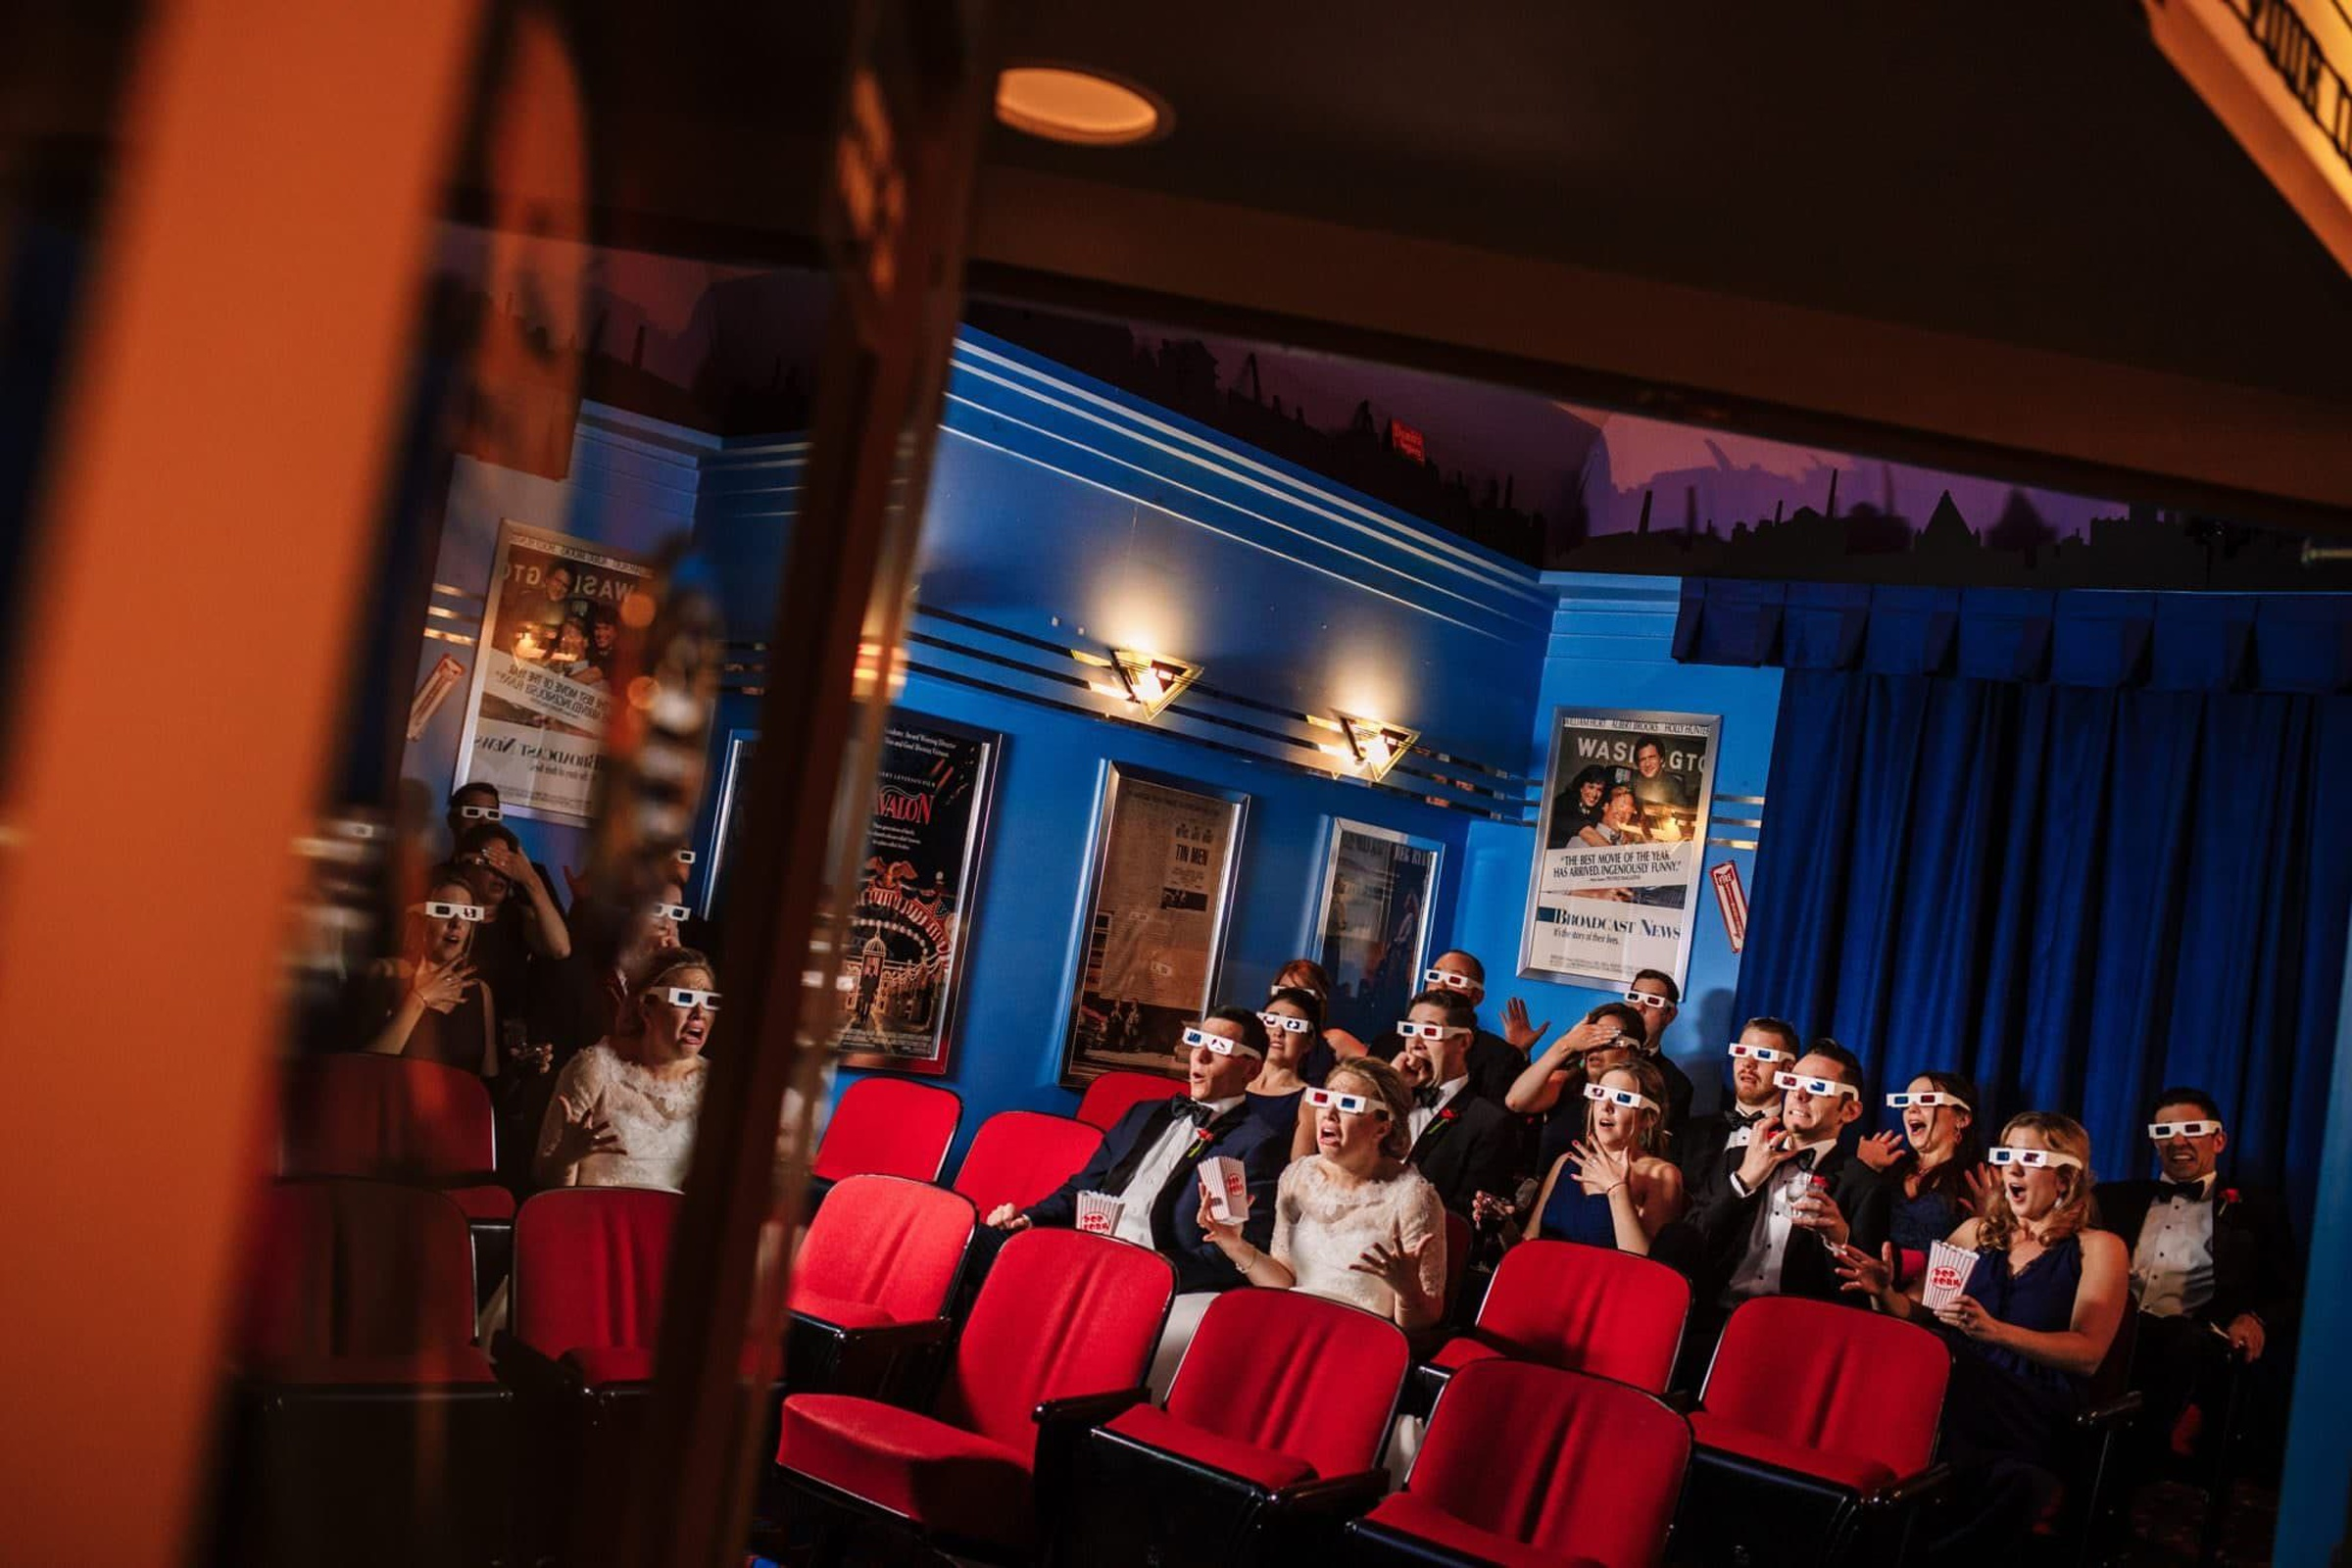 Wedding party in 3D glasses at theater - photo by Photography by Brea